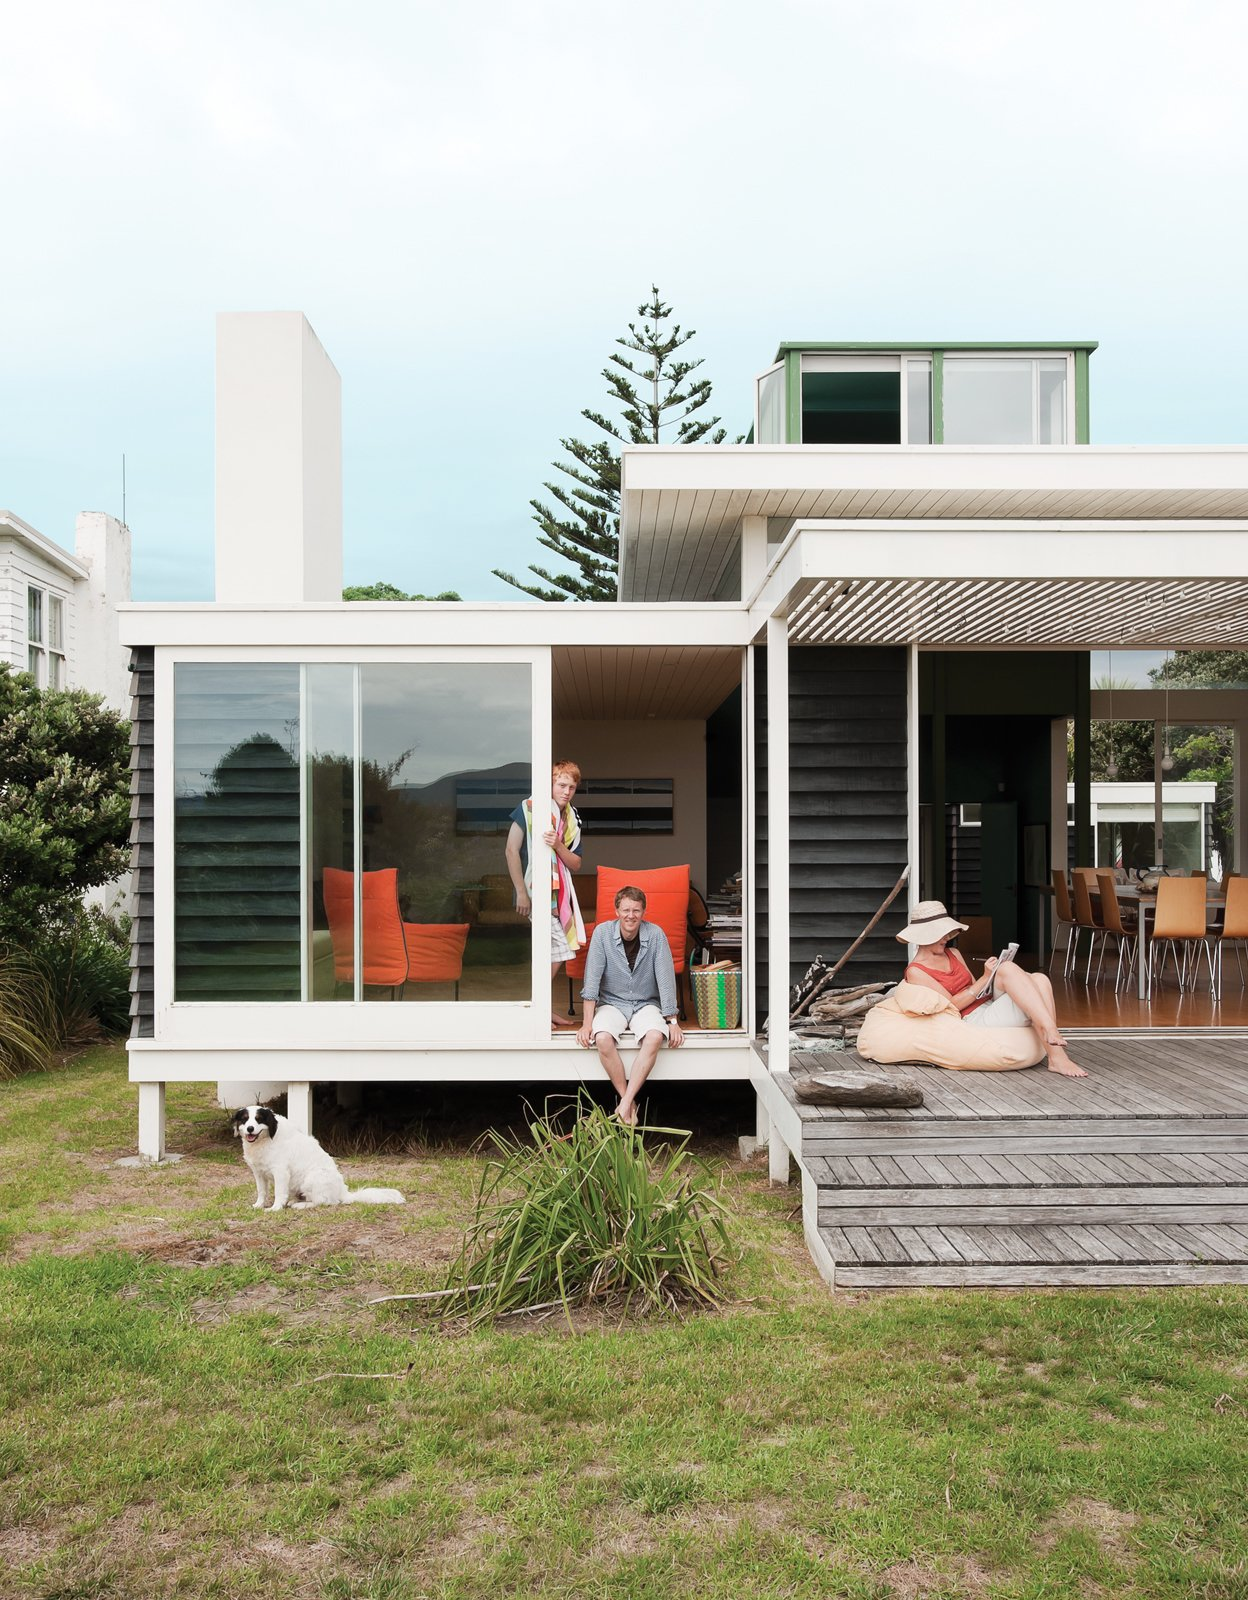 Bach to the BeachWith authenticity and simplicity as their rallying cry, a Kiwi architect and his wife have built a modern beach house that puts a fresh spin on the local vernacular.